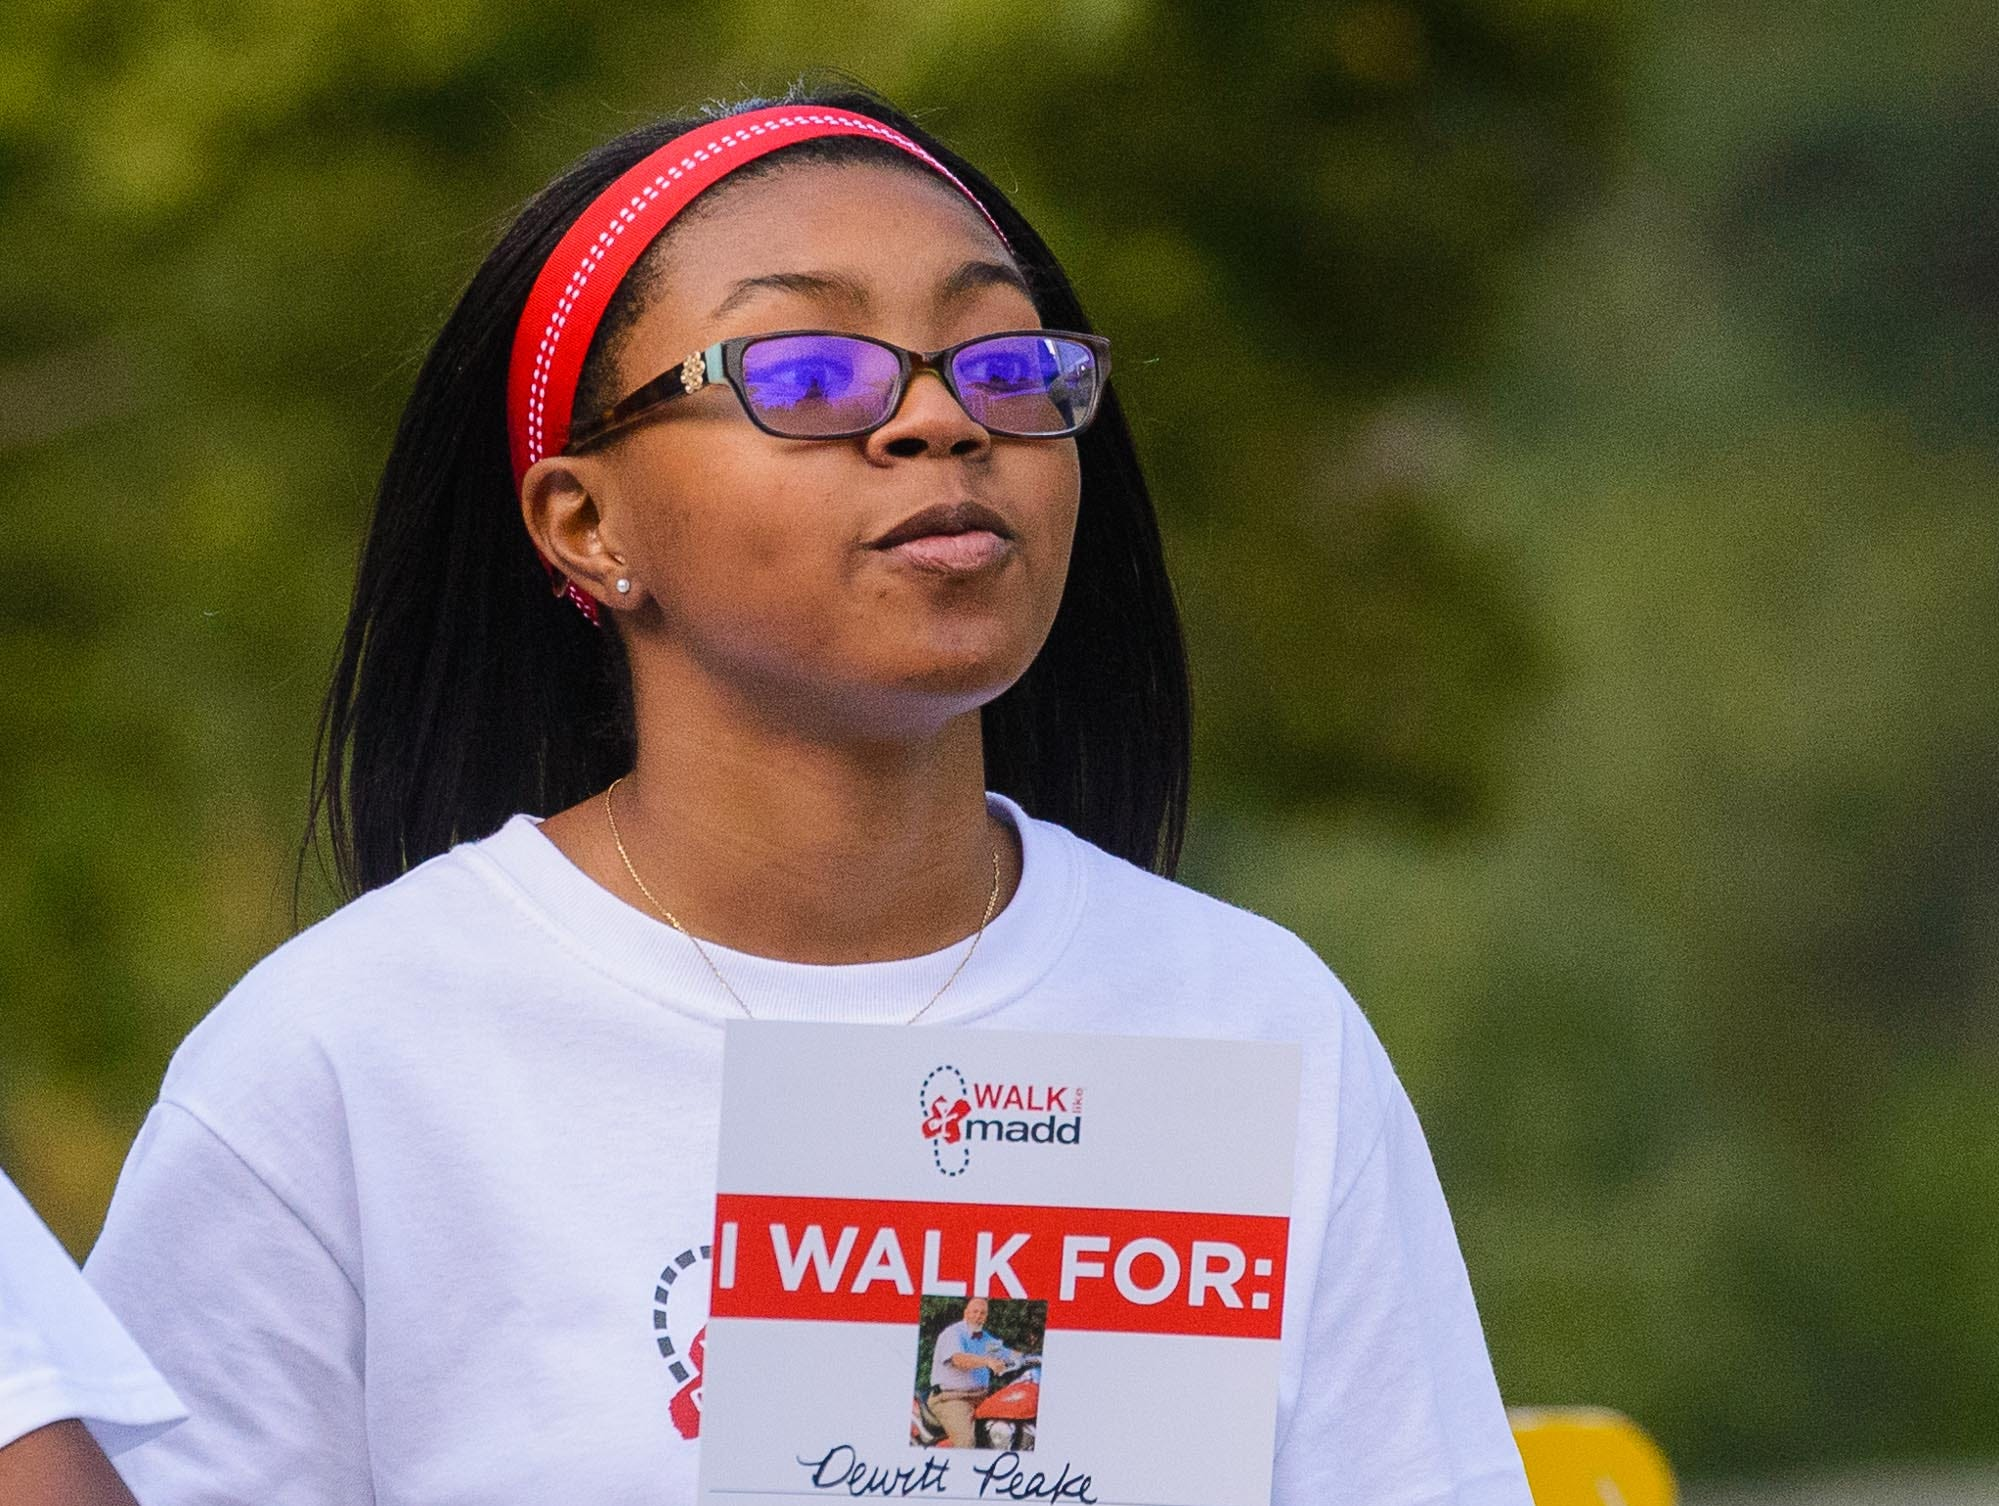 Mothers Against Drunk Driving hosts 2nd annual Walk Like MADD  Greenville Upstate fundraiser and 5K walk at Clemson's Internation Center for Automotive Research on Sunday, October 7, 2018.